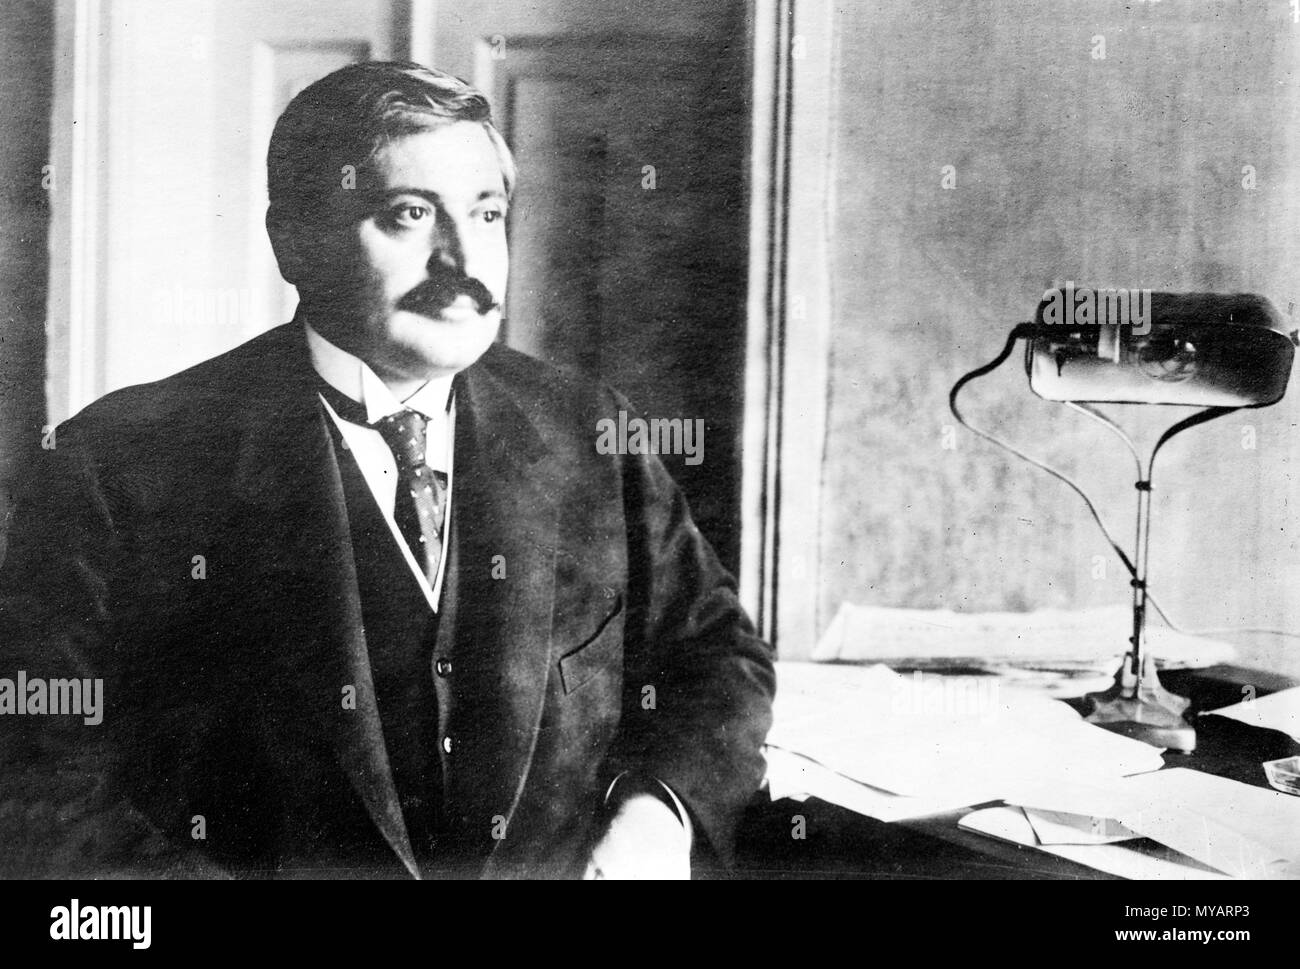 Talaat Pacha, Mehmed Talaat (1874 – 1921), Talaat Pasha, one of the triumvirate known as the Three Pashas that de facto ruled the Ottoman Empire during the First World War - Stock Image